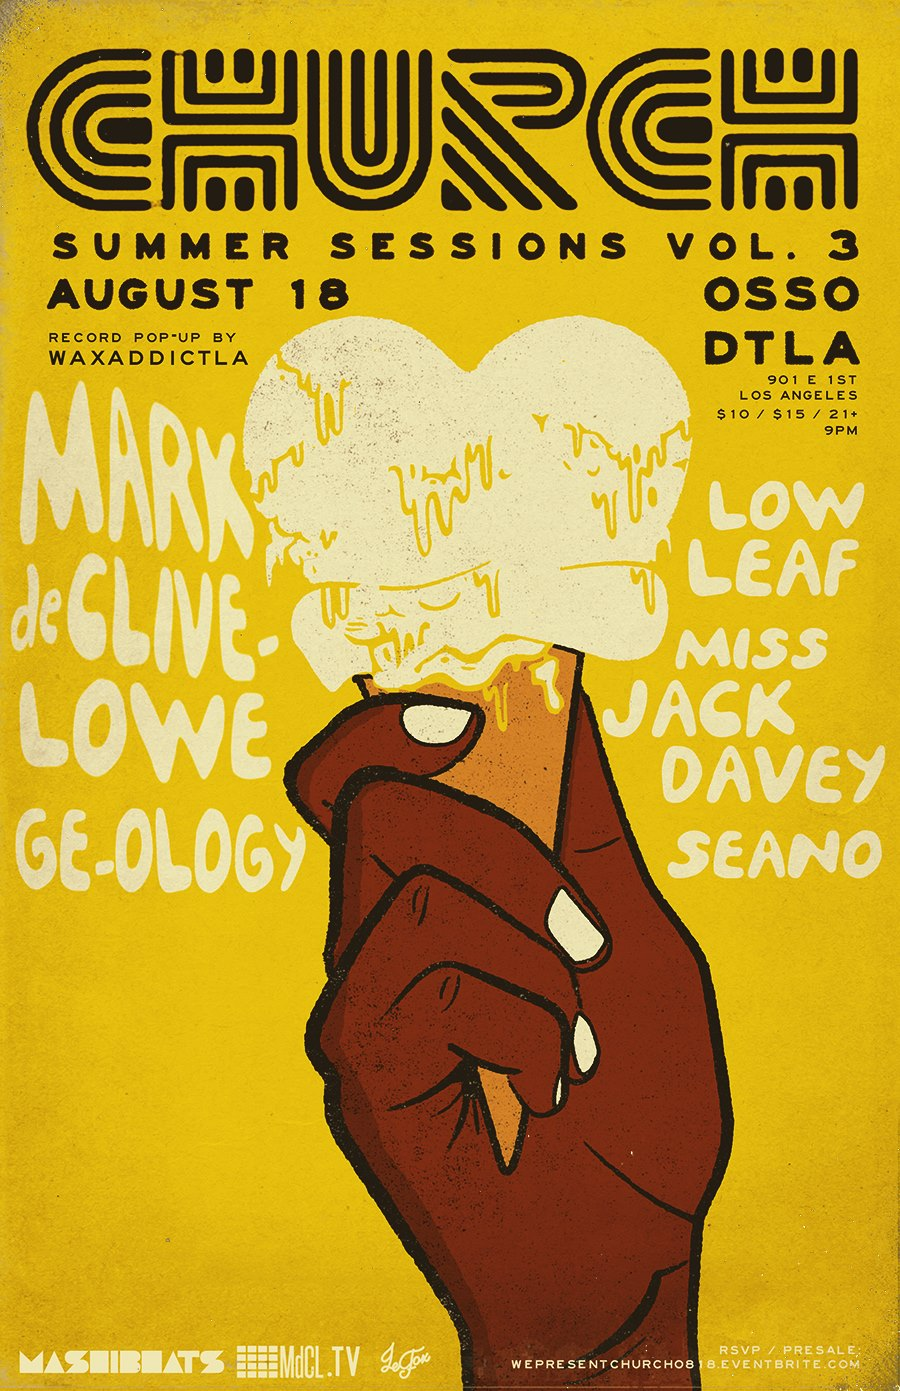 Mark de Clive-Lowe summer sessions 3